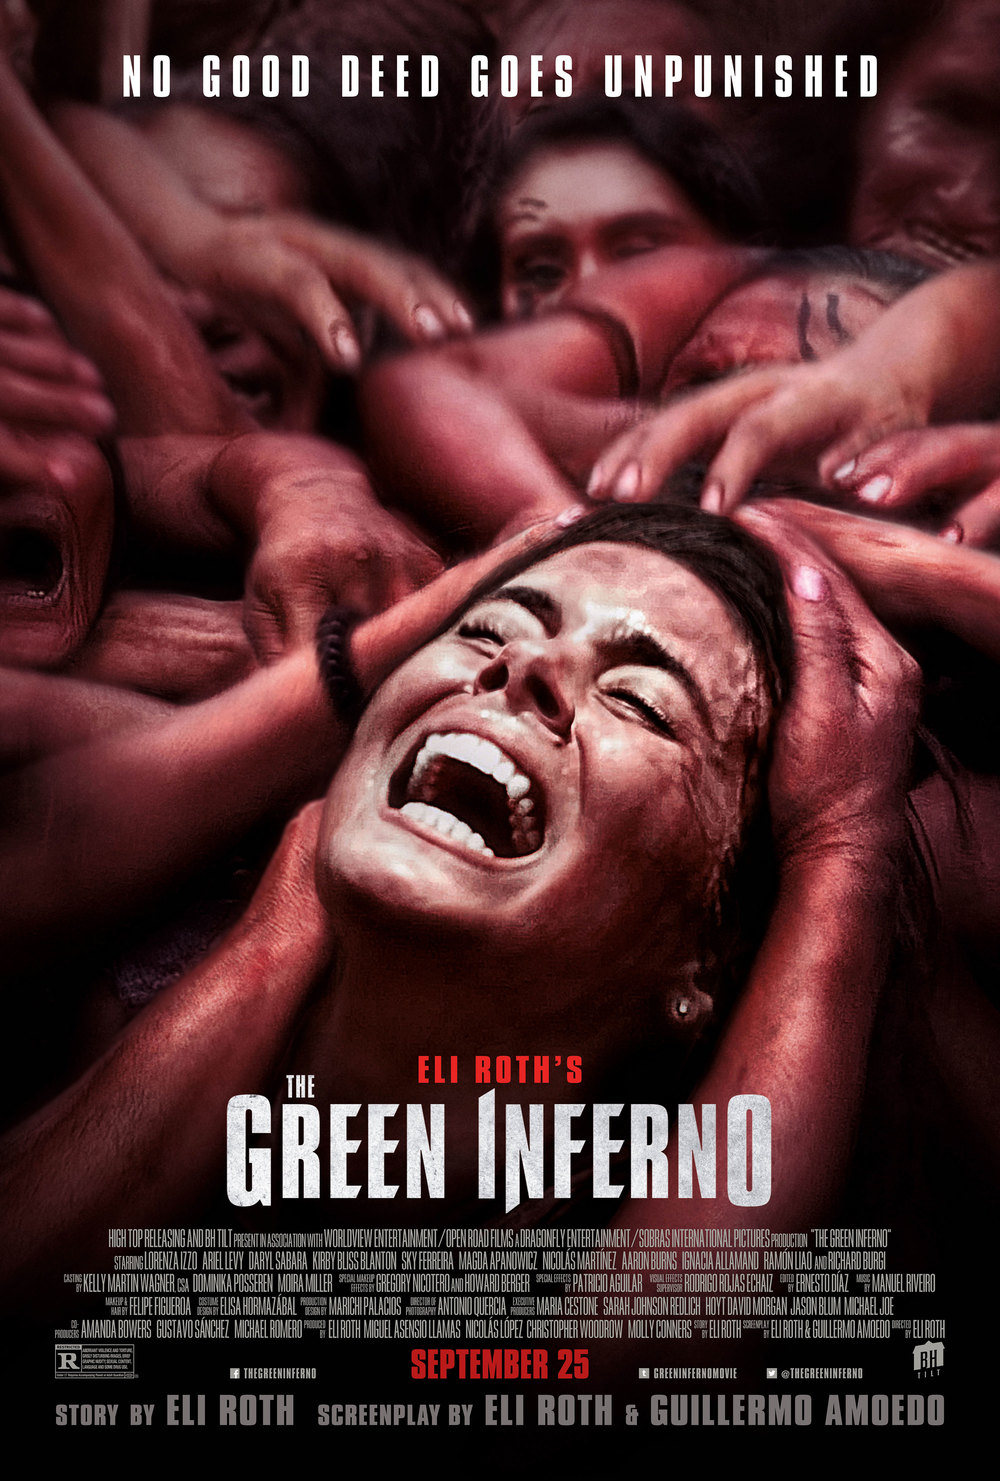 THE GREEN INFERNO (2015) Dir. Eli Roth